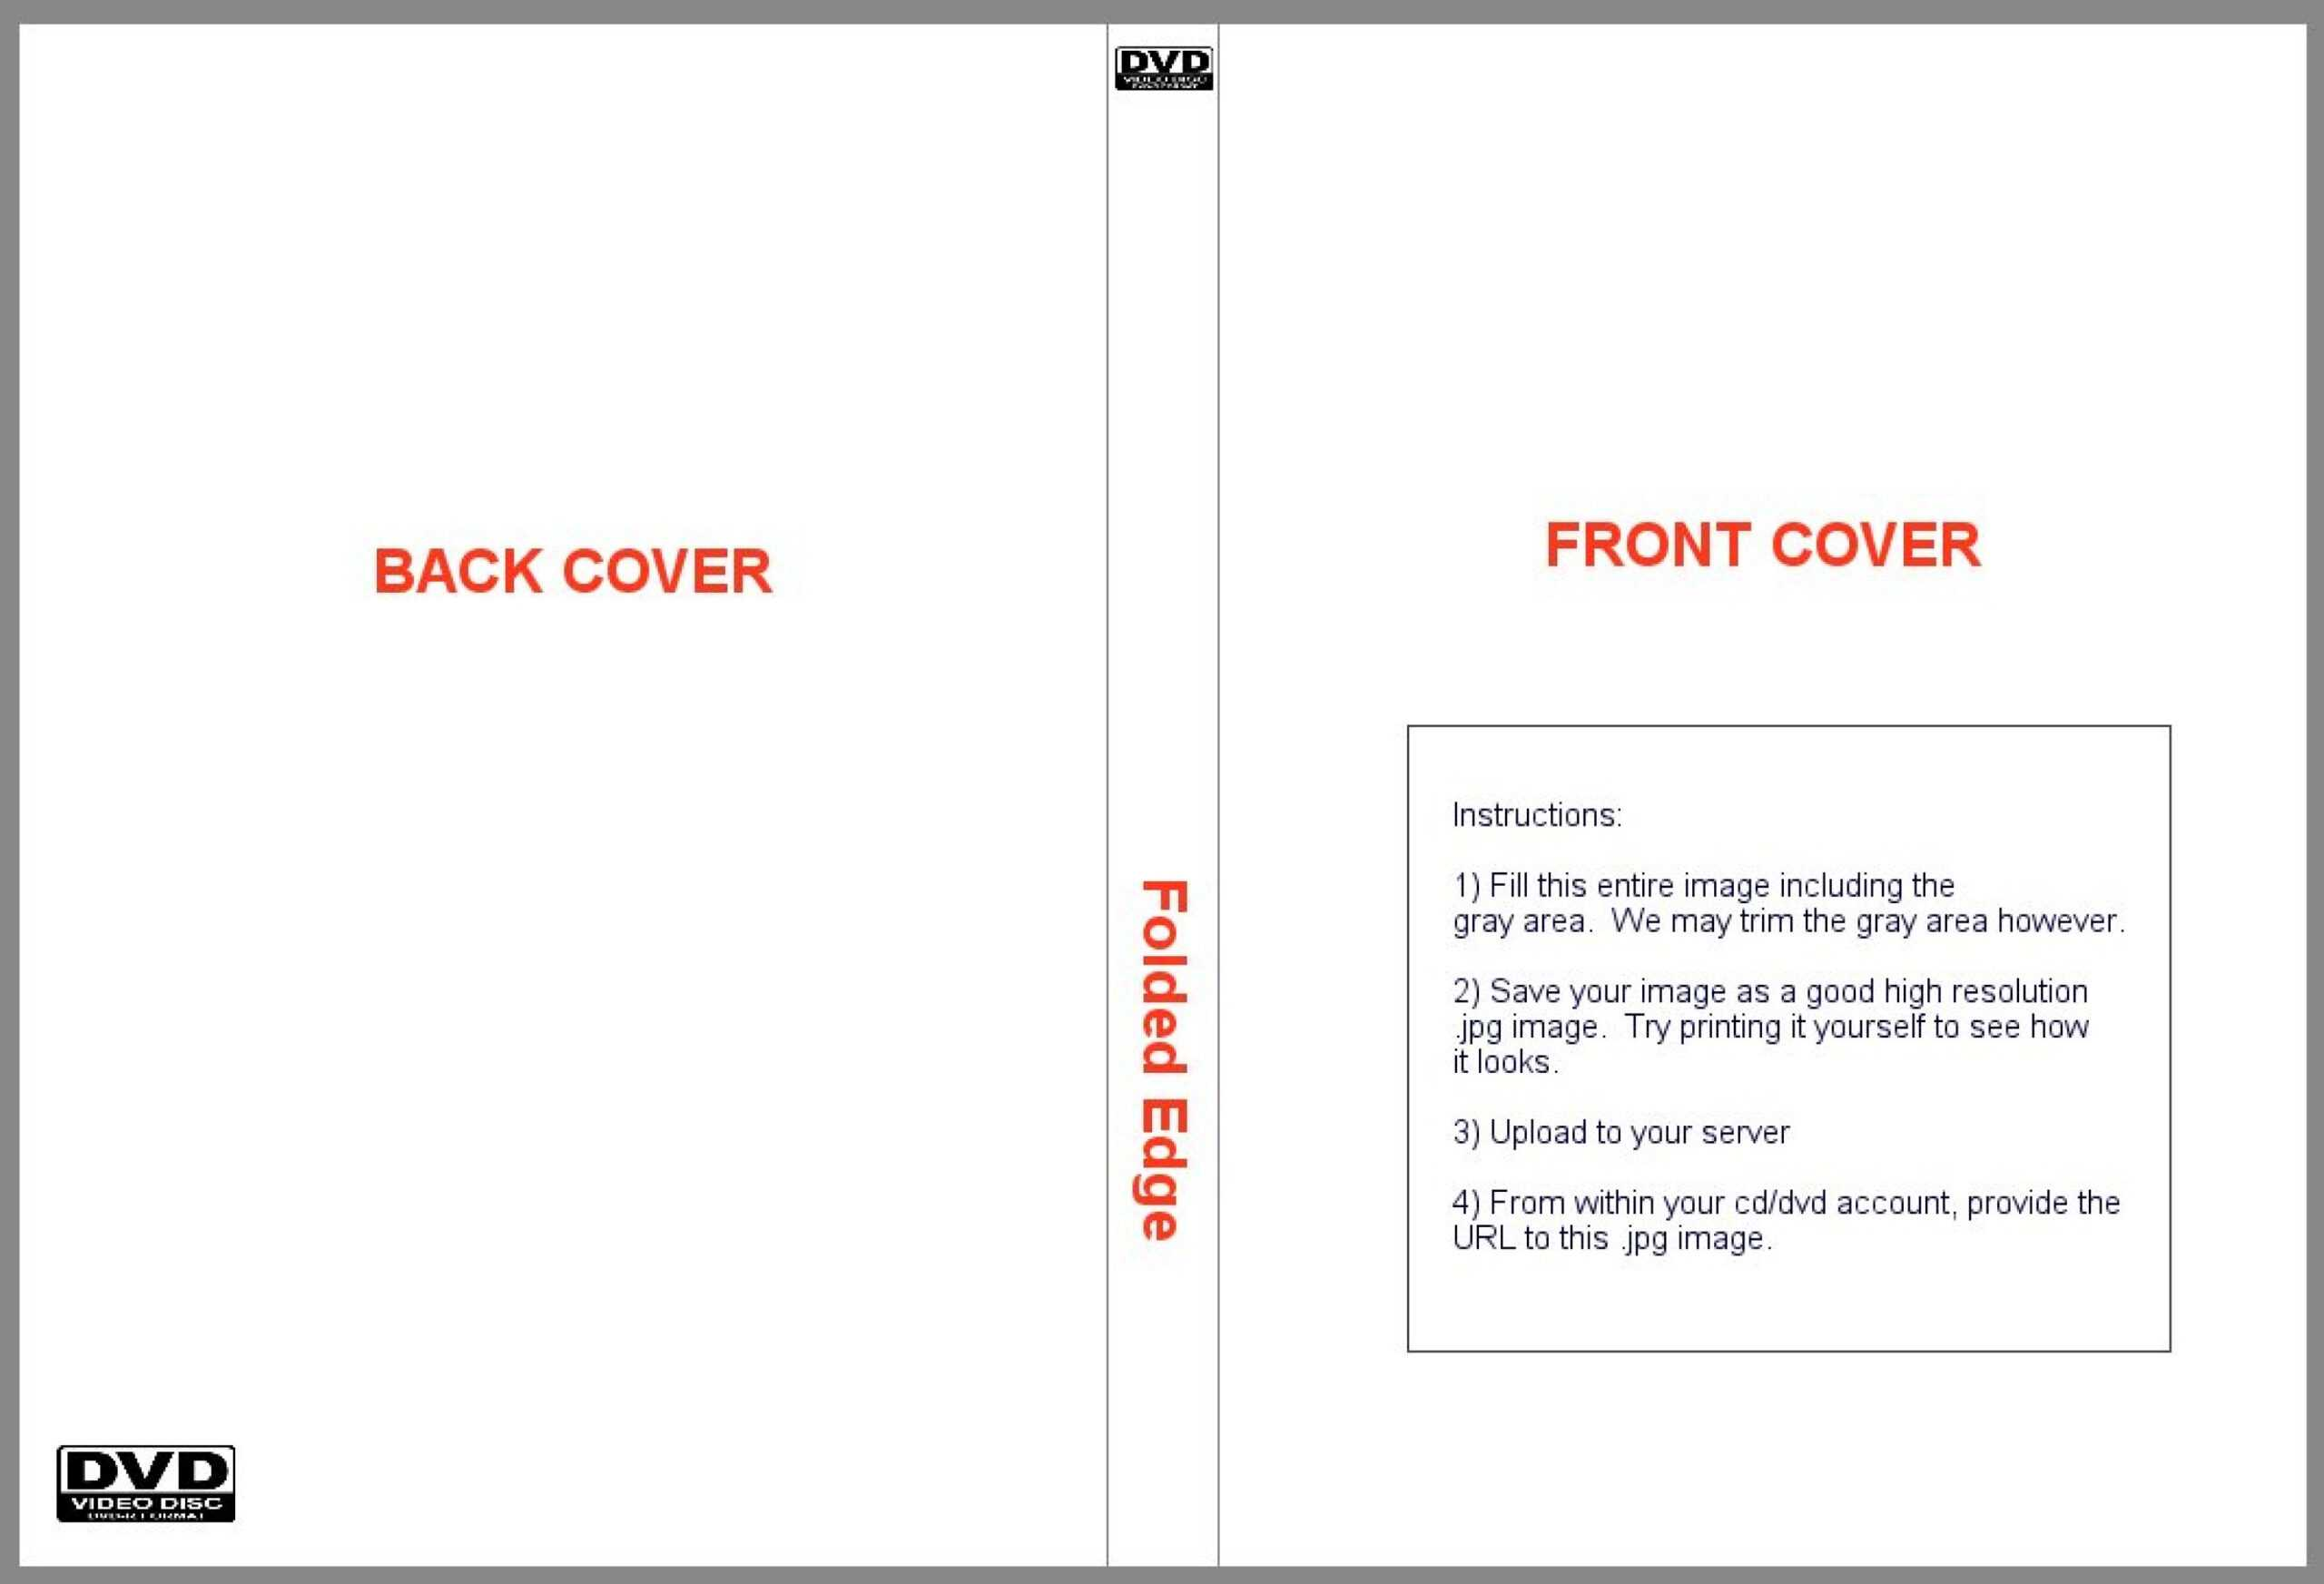 008 Dvd Cover Template Czwulgvg Case Label Free Impressive Intended For Cd Liner Notes Template Word